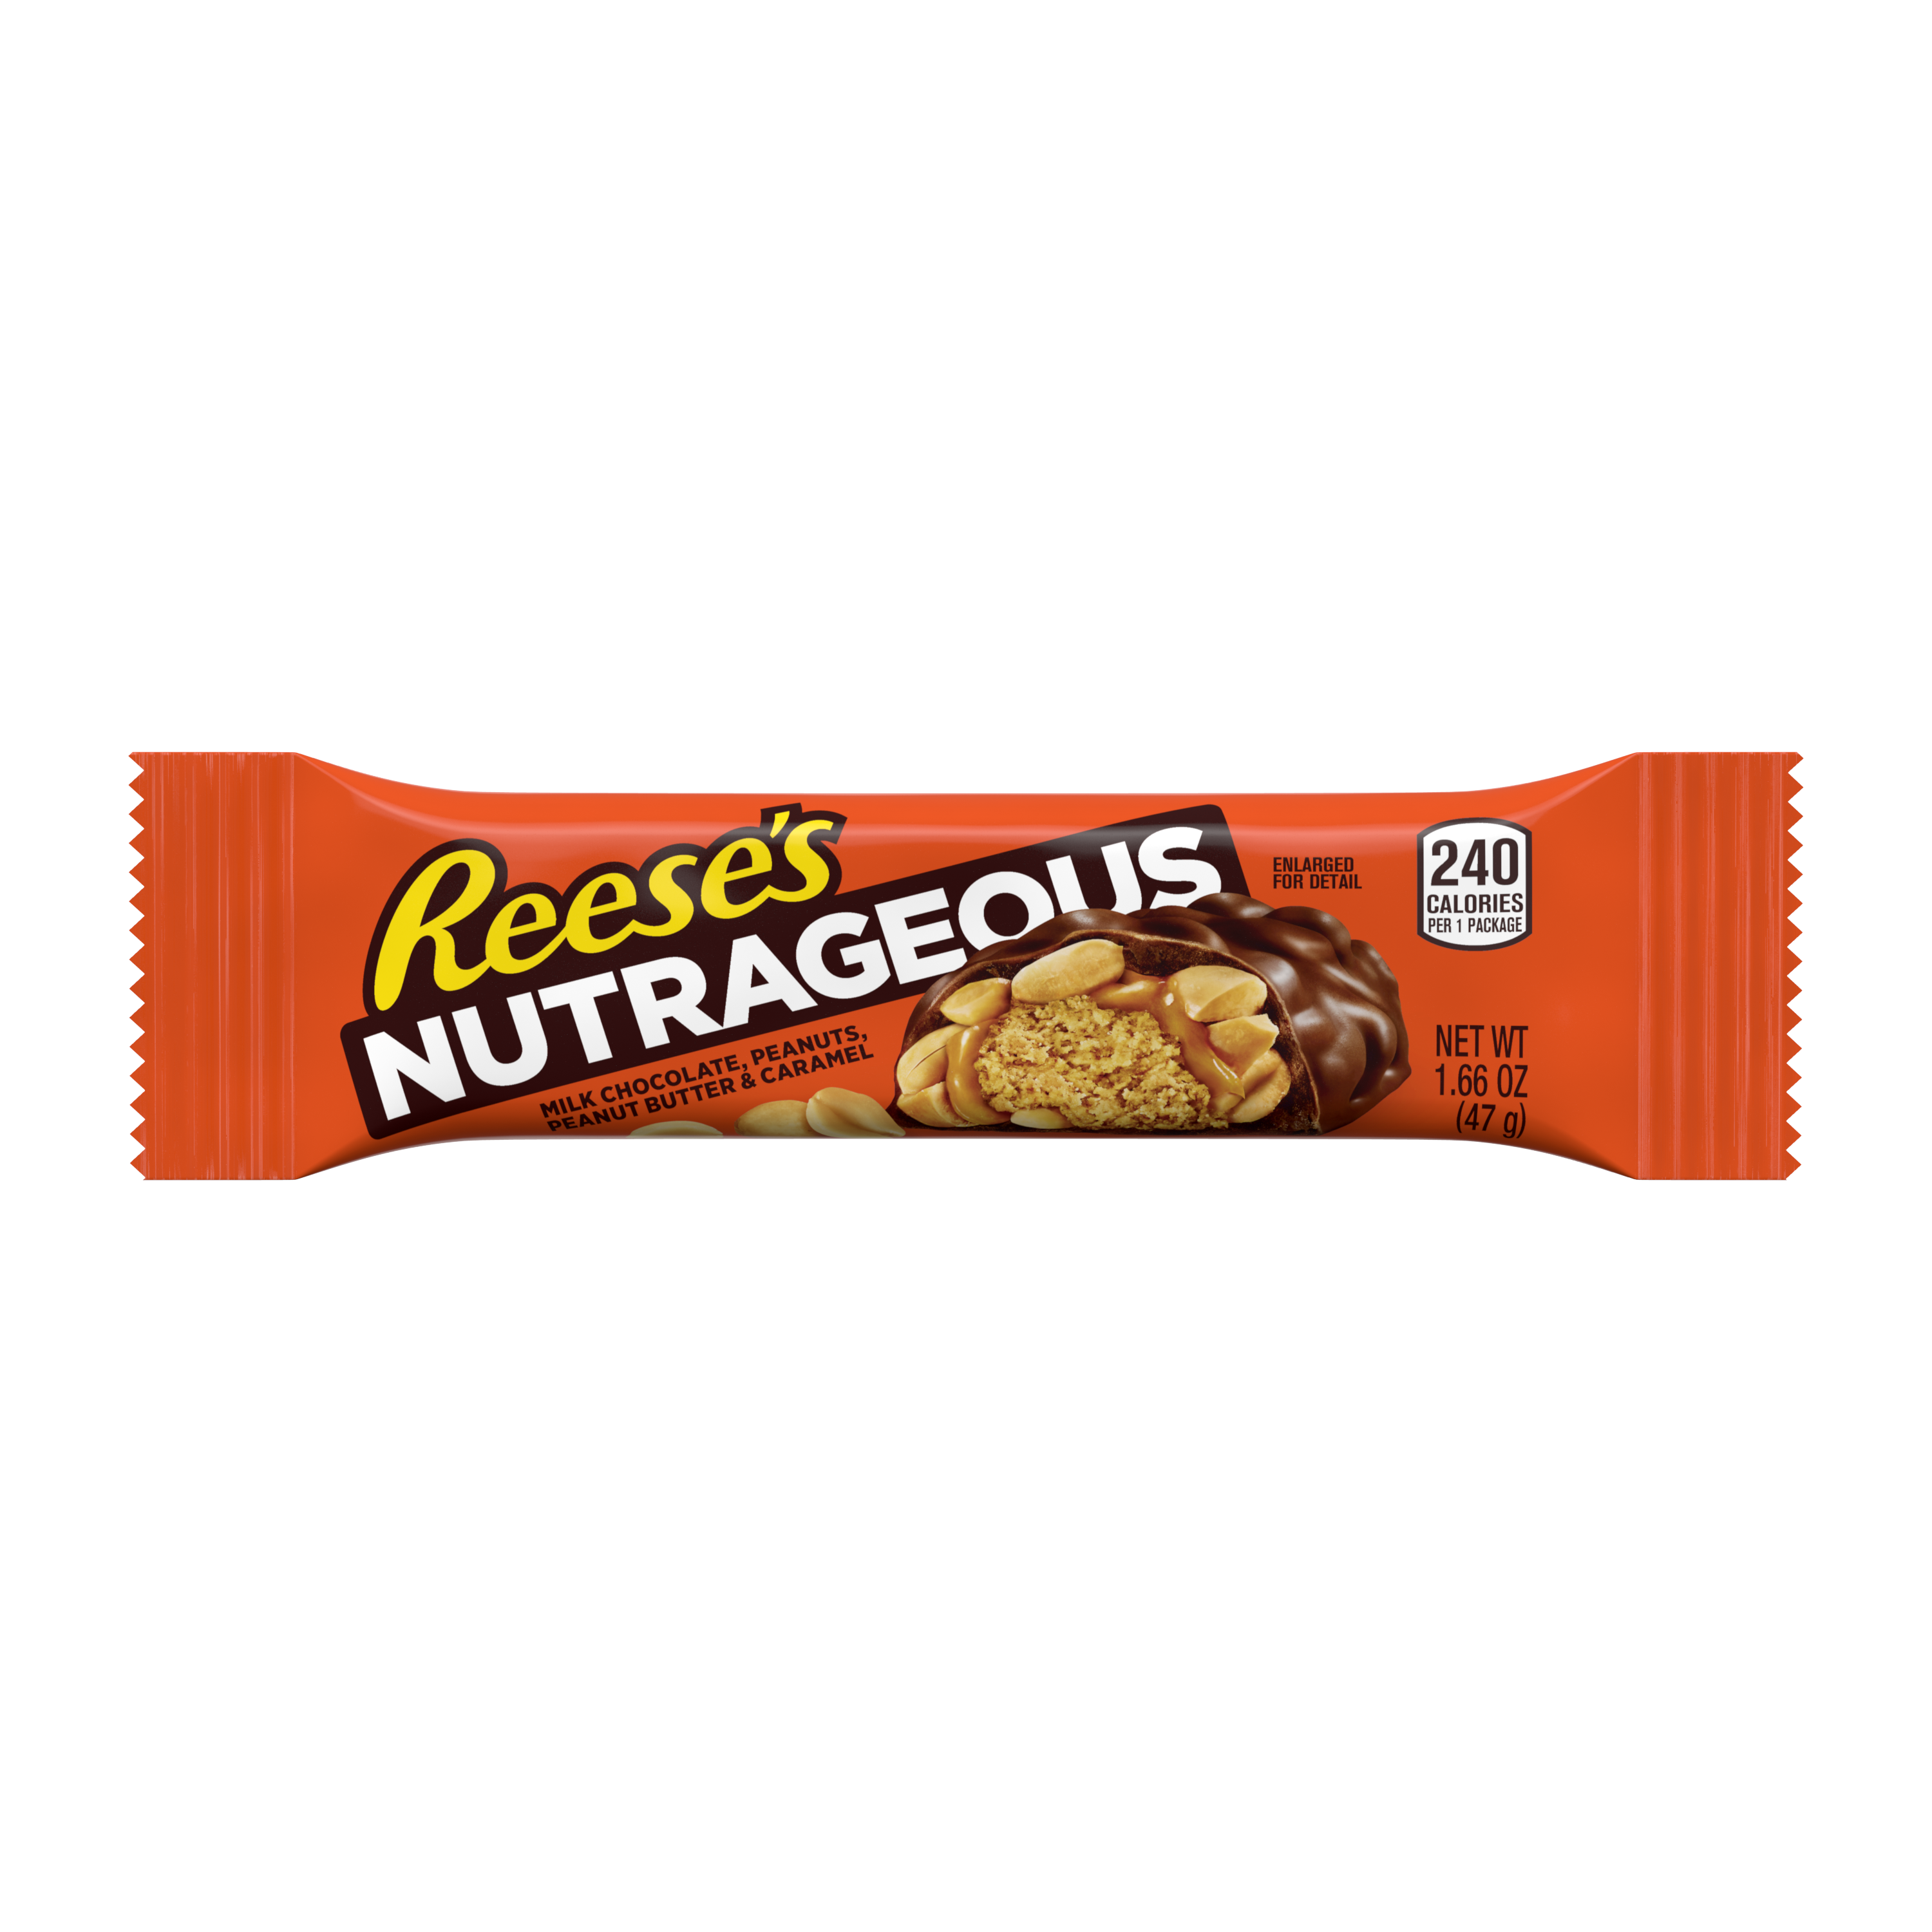 REESE'S NUTRAGEOUS Milk Chocolate Peanut Butter Candy Bar, 1.66 oz - Front of Package